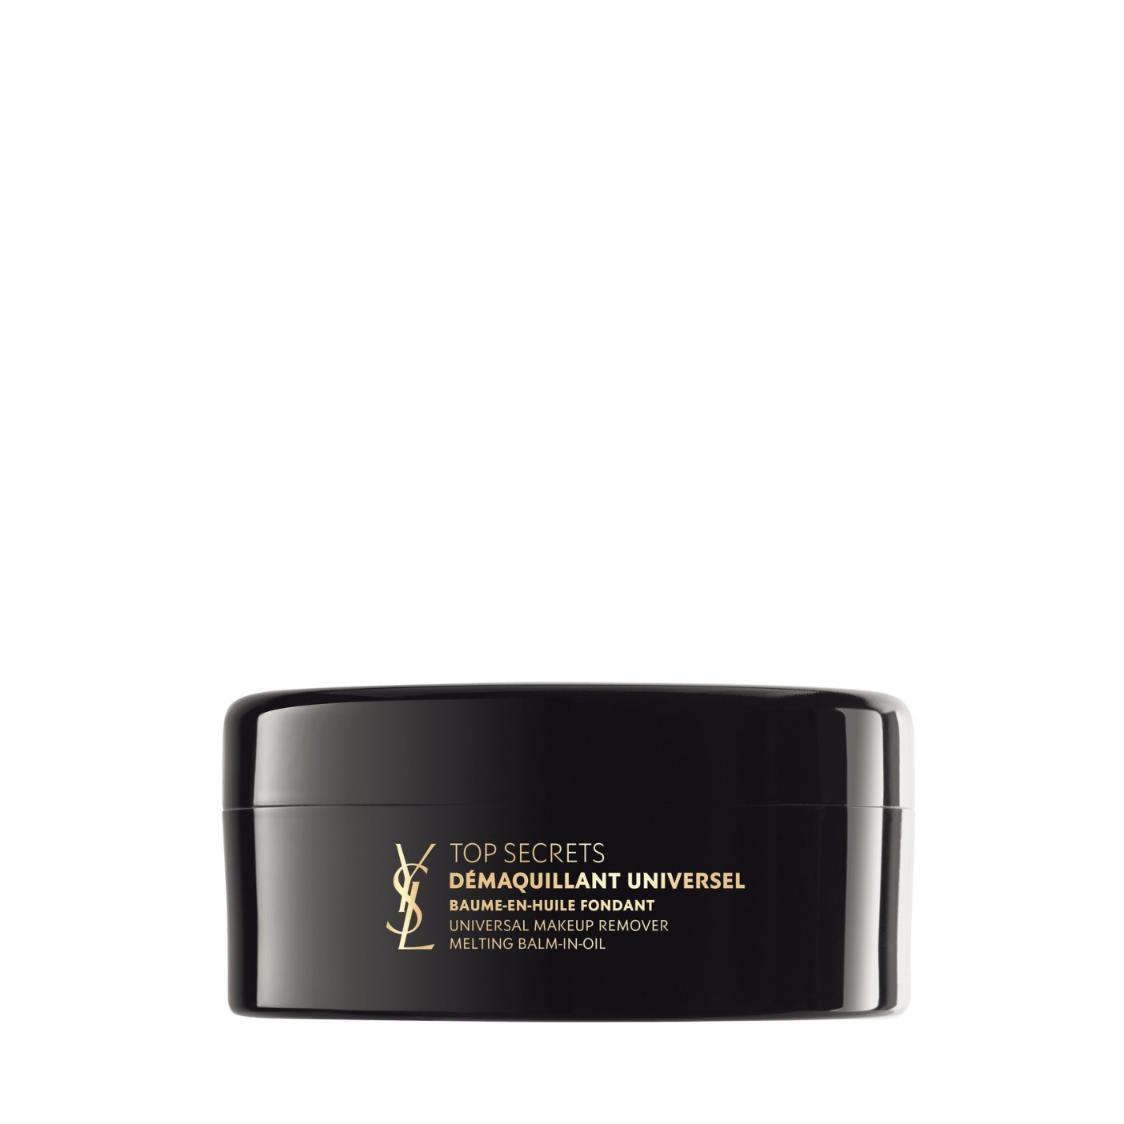 YSL Top Secrets Universal Makeup Remover Balm-In-Oil 125ml